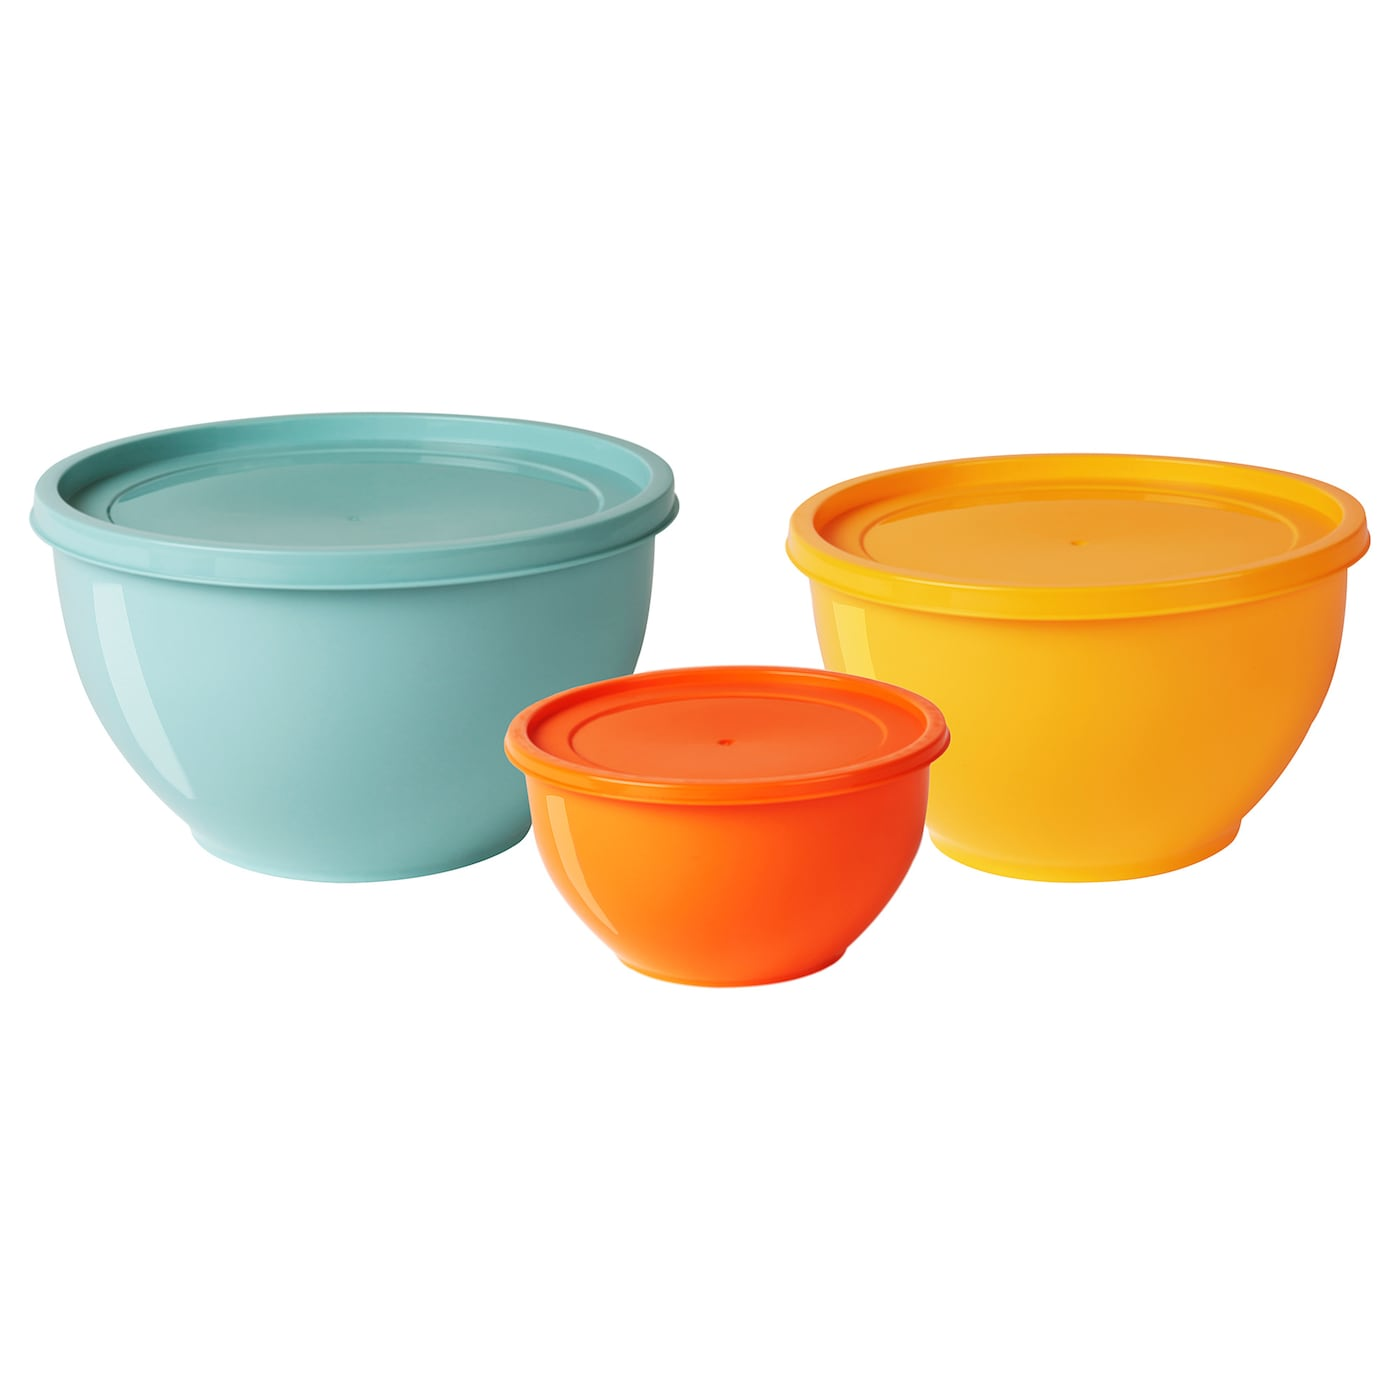 IKEA SOMMAR 2019 bowl with lid, set of 3